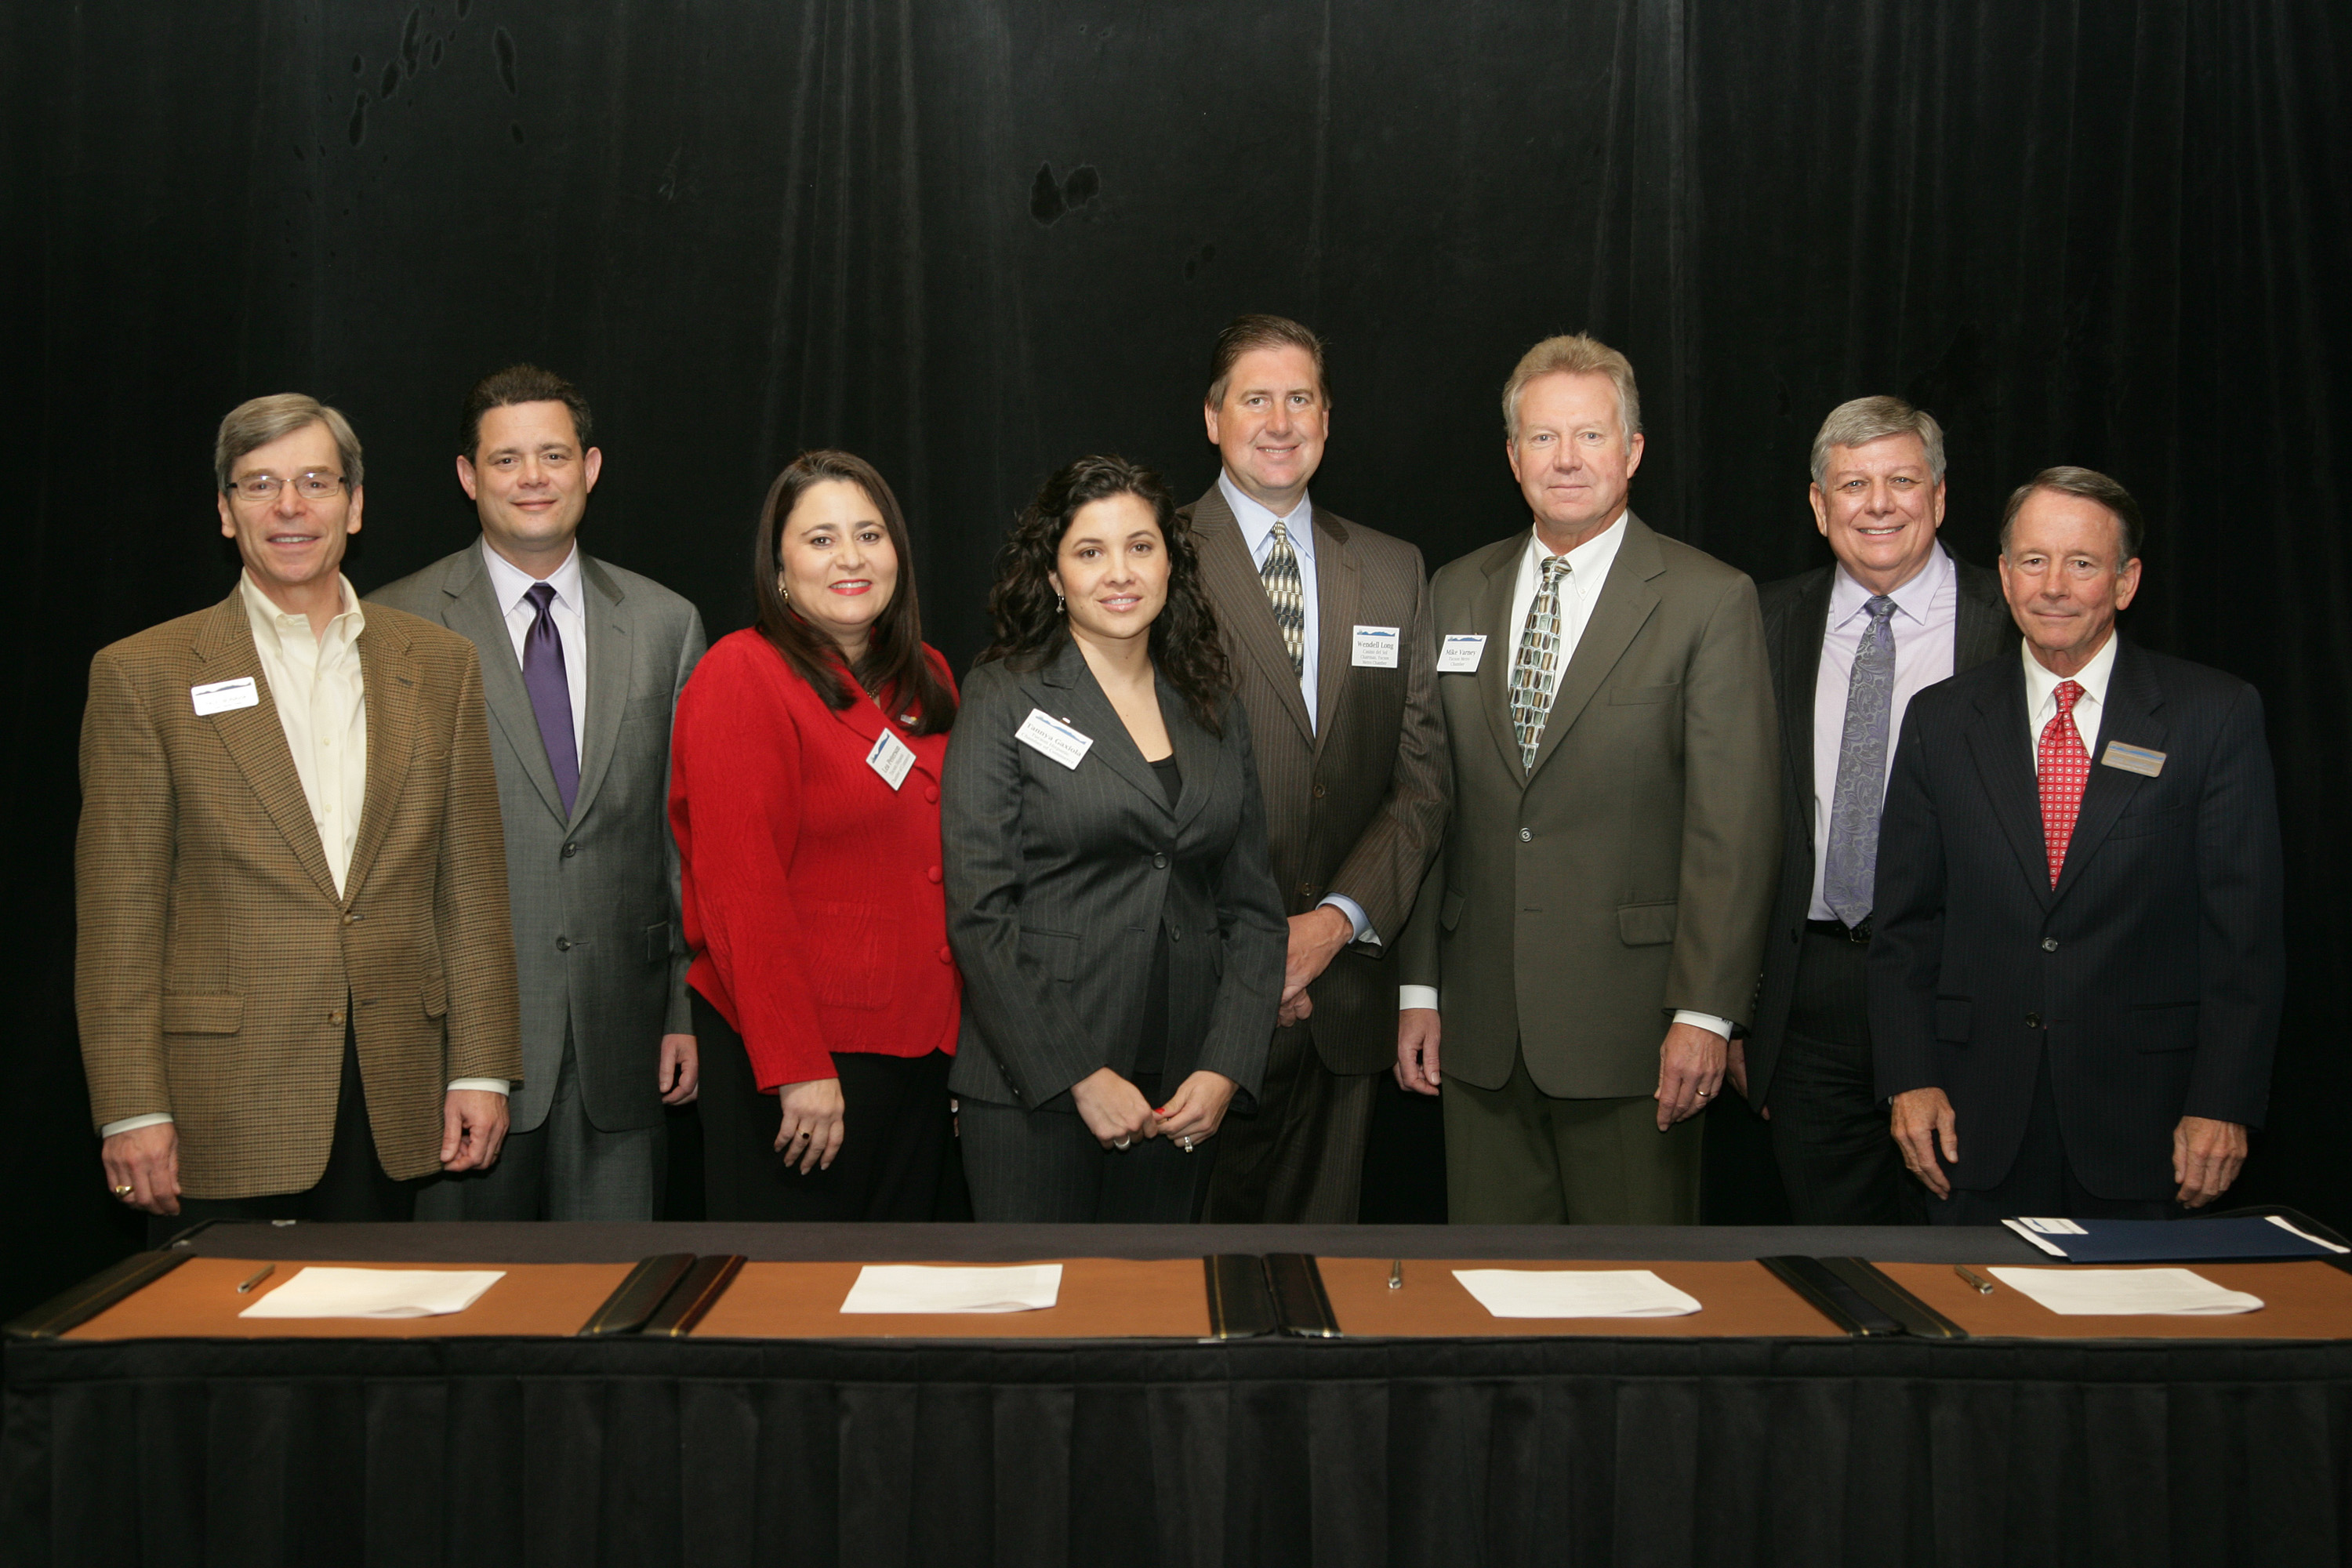 Tucson Business Organizations Signing Group